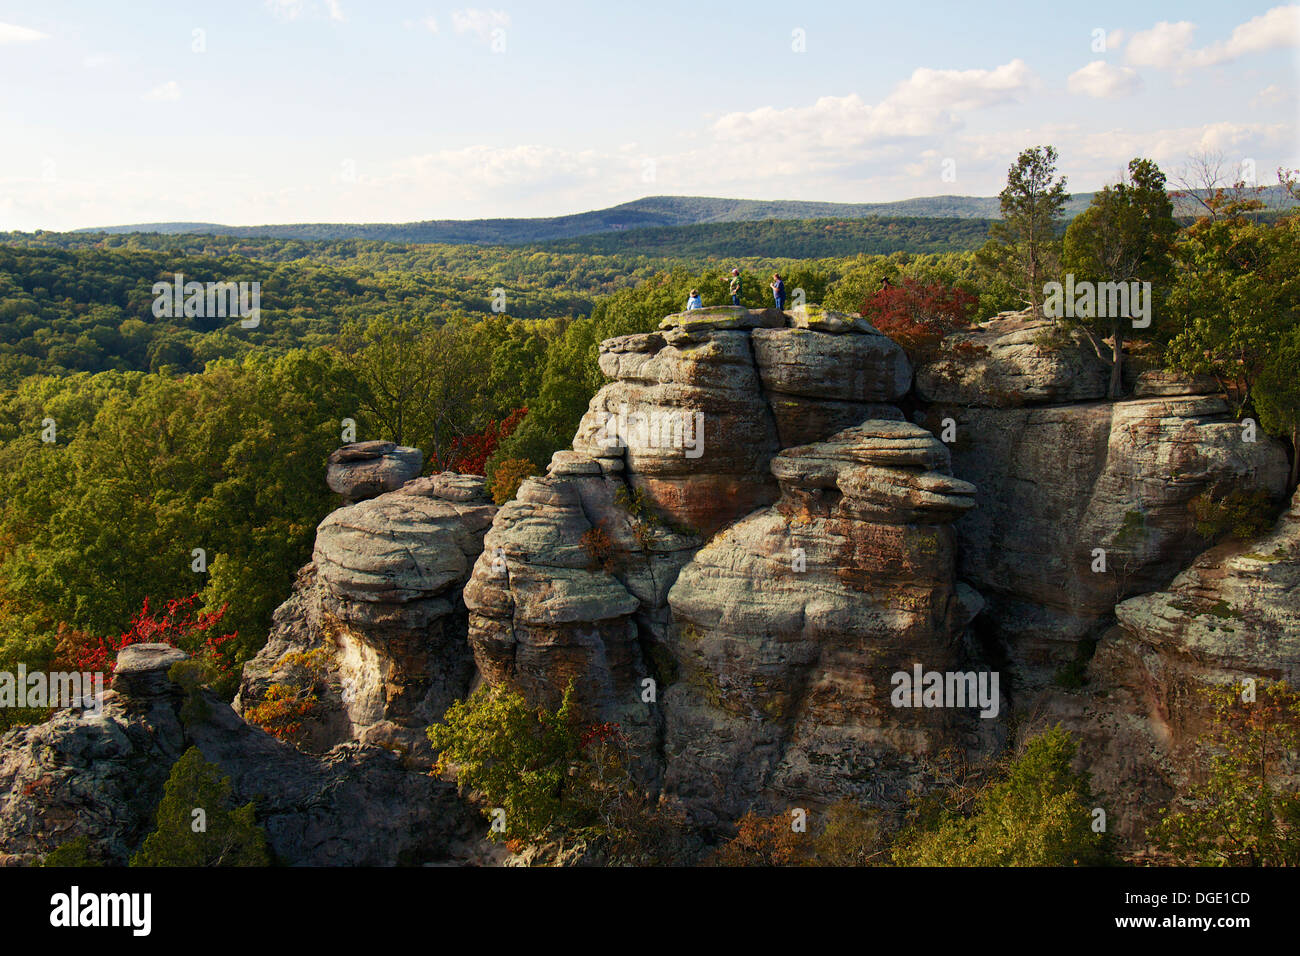 Garden Of The Gods Recreation Area Southern Illinois Hikers On Top Stock Photo 61774061 Alamy